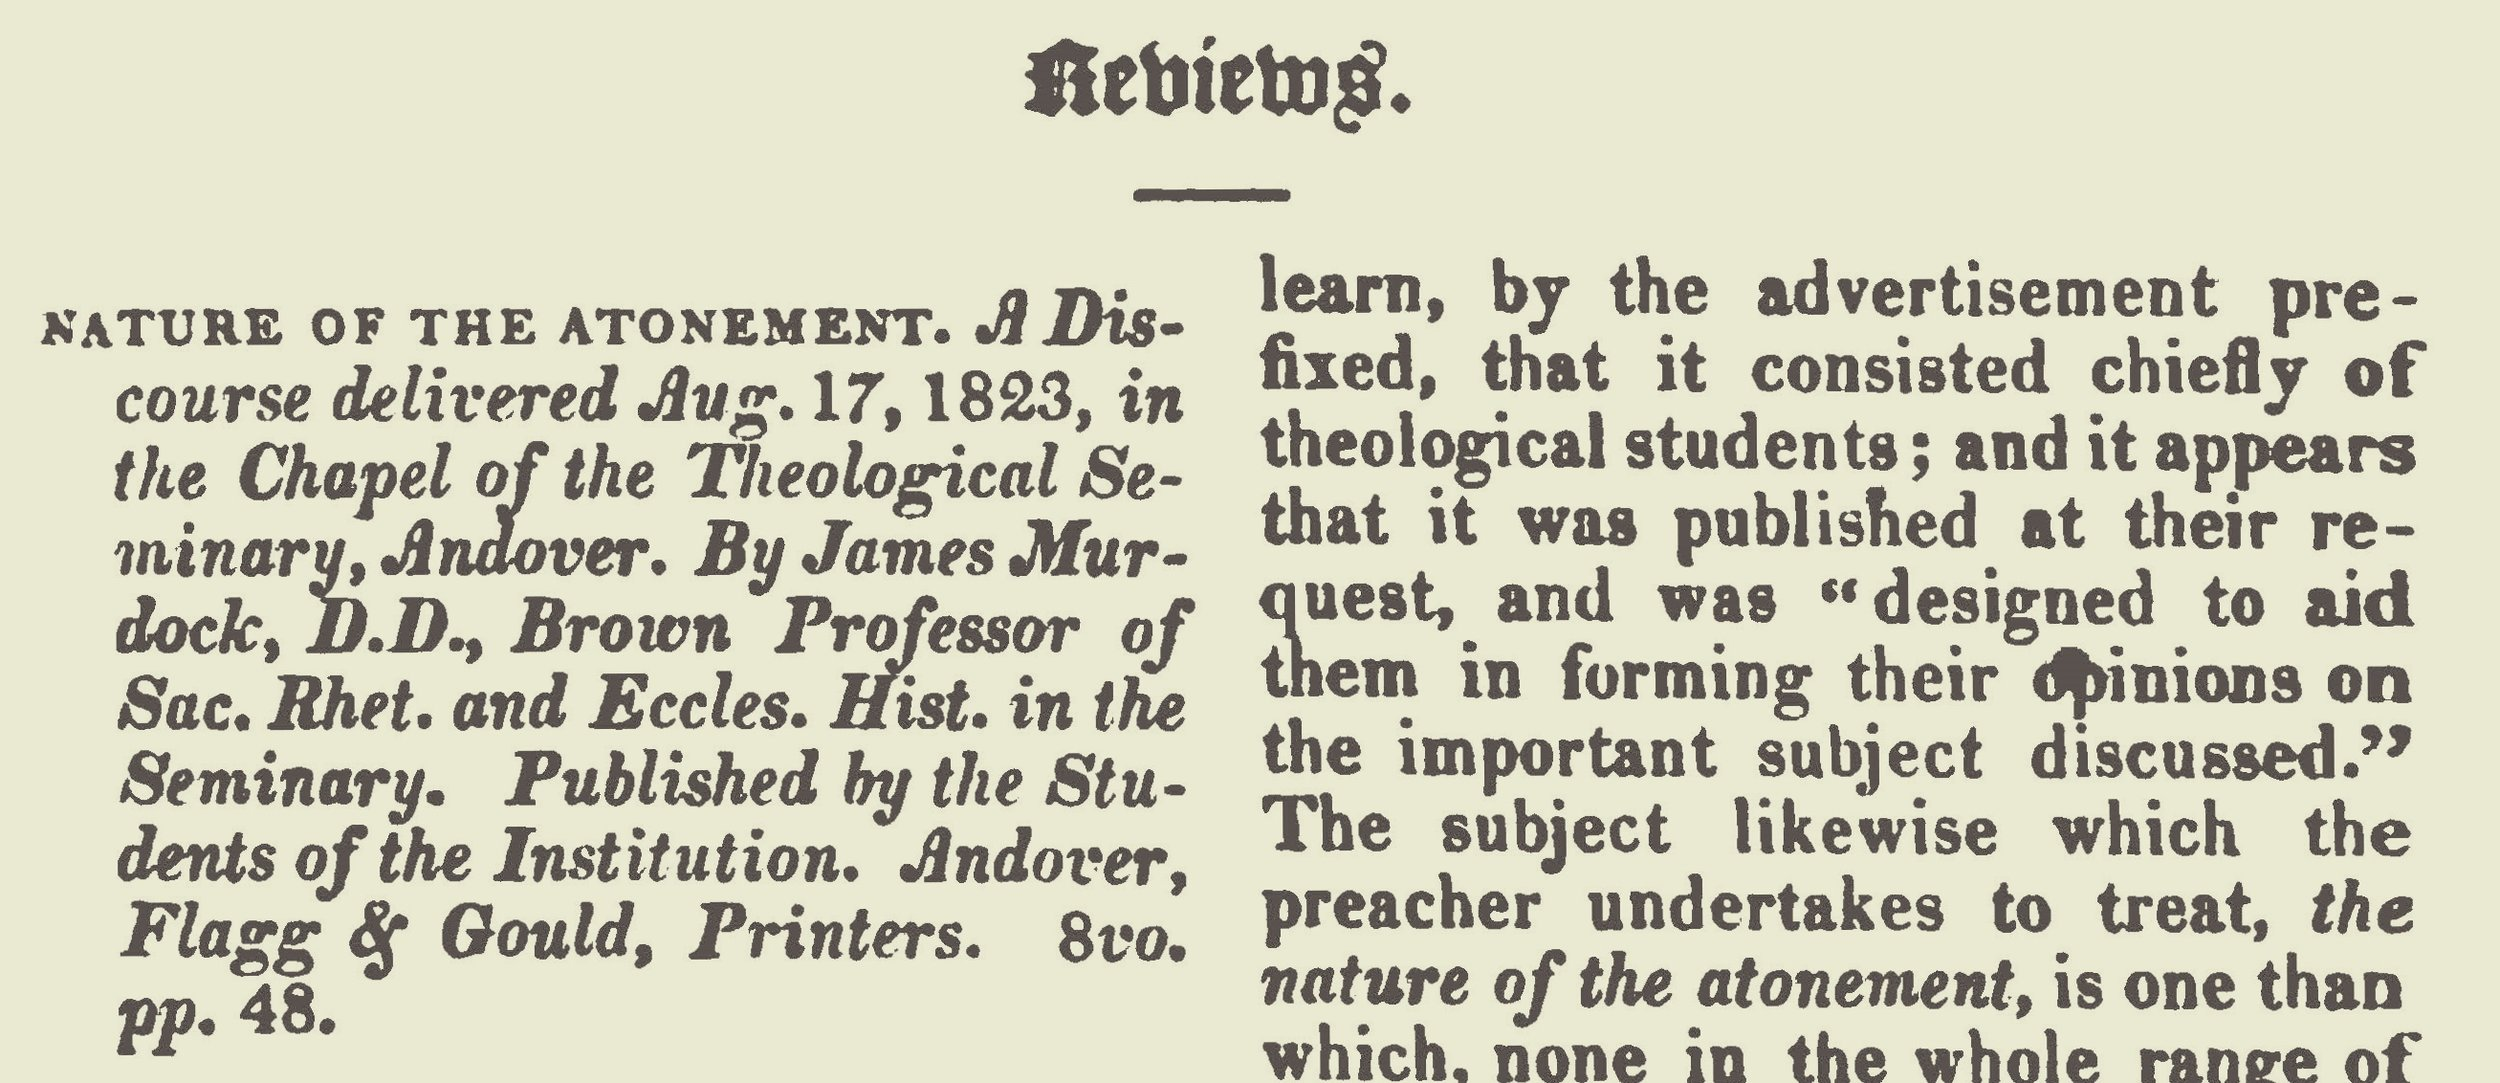 This review is a 3-part article which was published in the February, March and April 1824 issues of  The Christian Advocate .